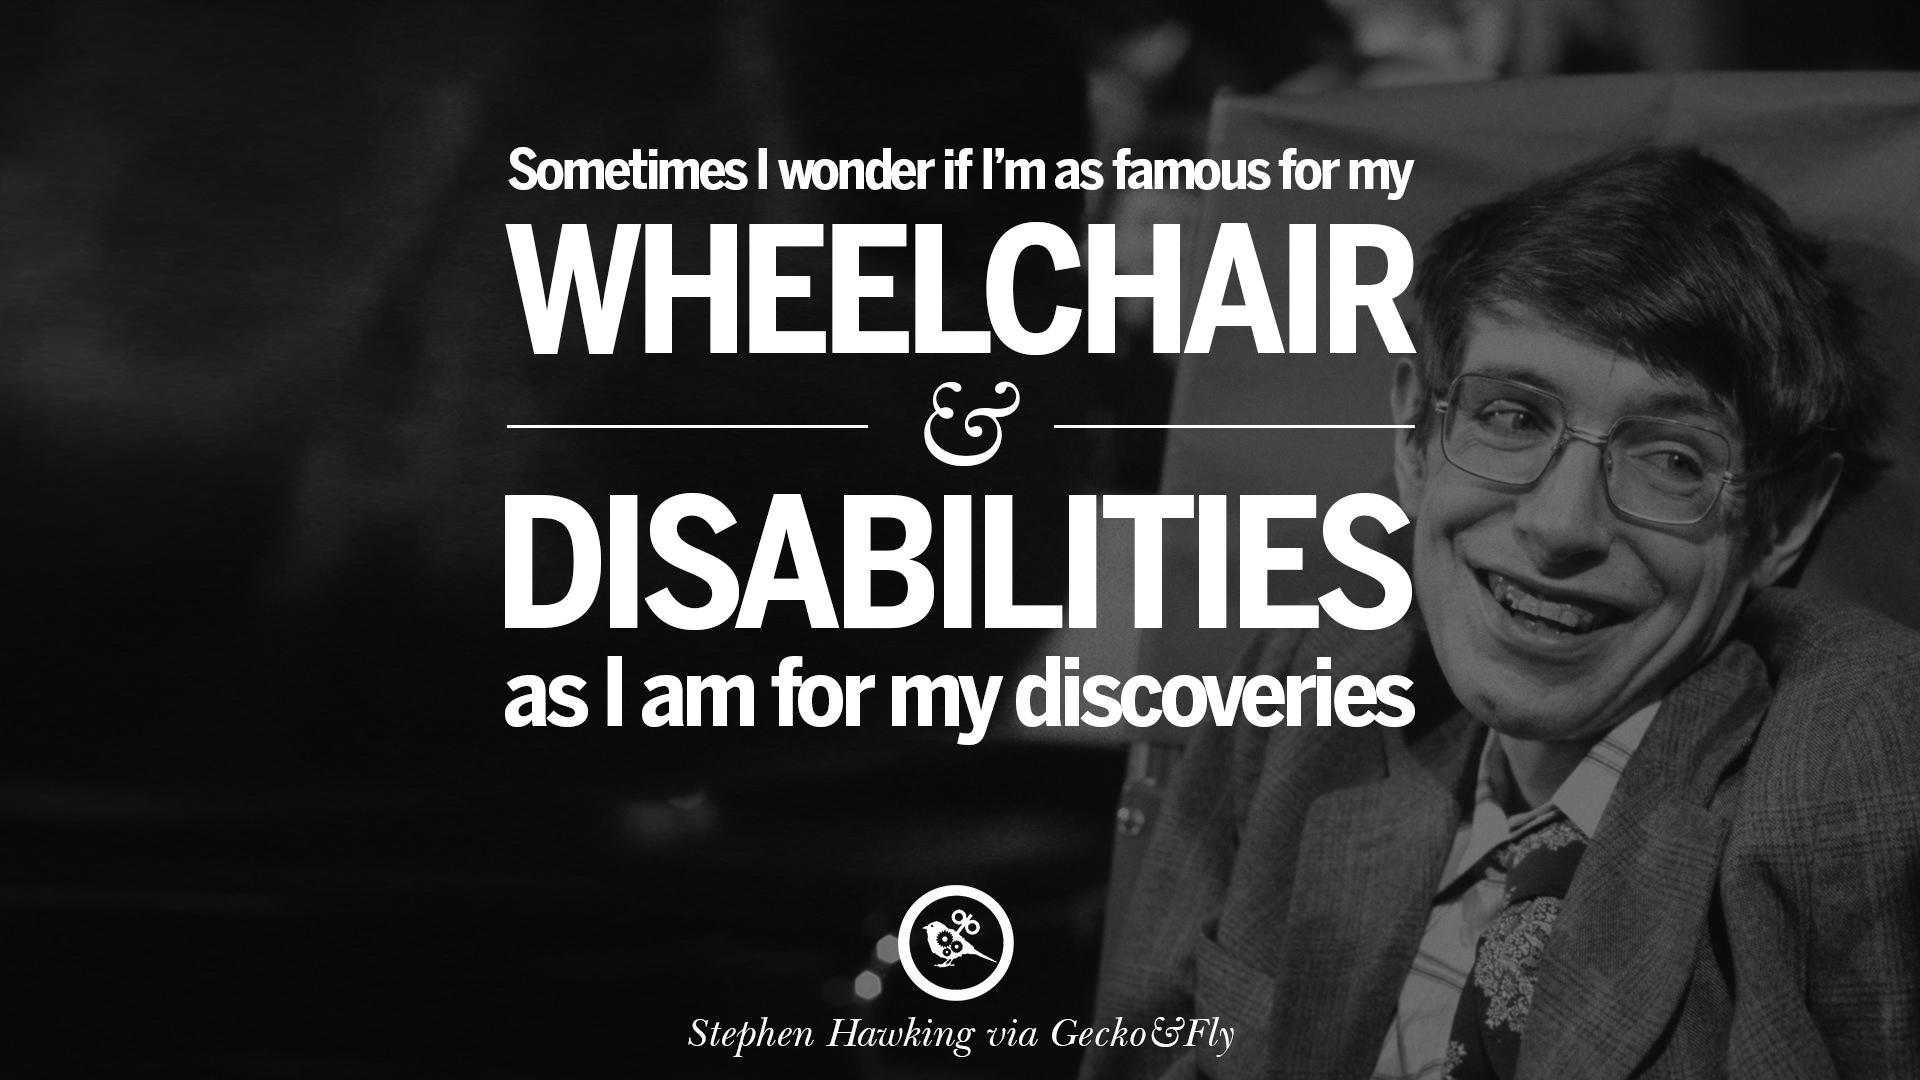 Disability Quotes Awesome Quotes About Disabilities Magnificent Best 25 Disability Quotes